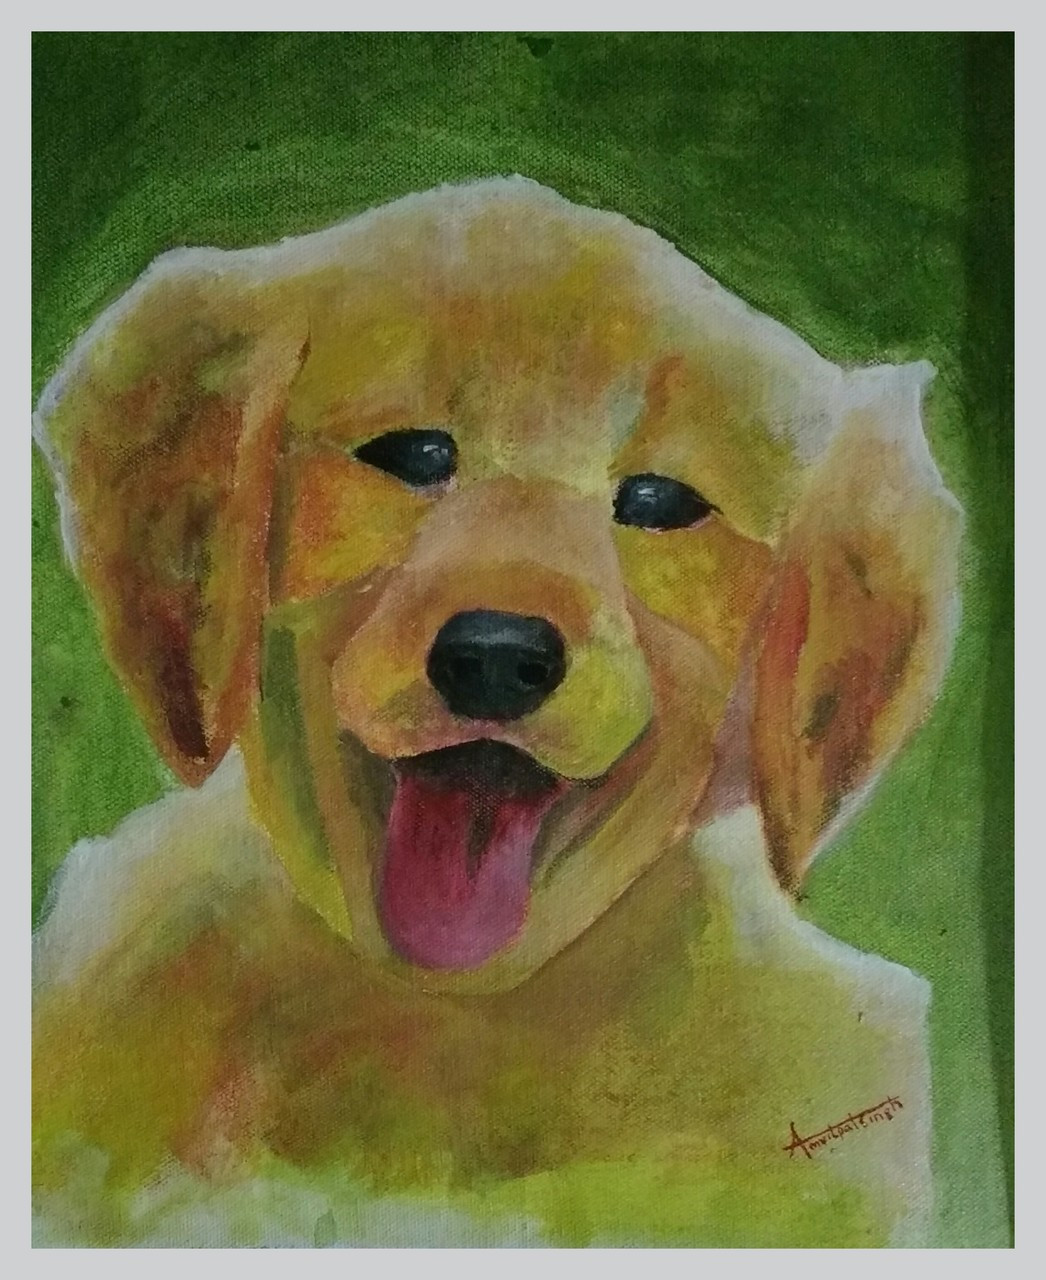 Dog Cat Companion Partner Animals Animal Cute Puppy Wild Acrylic Oil Canvas PaintingMY PARTNER